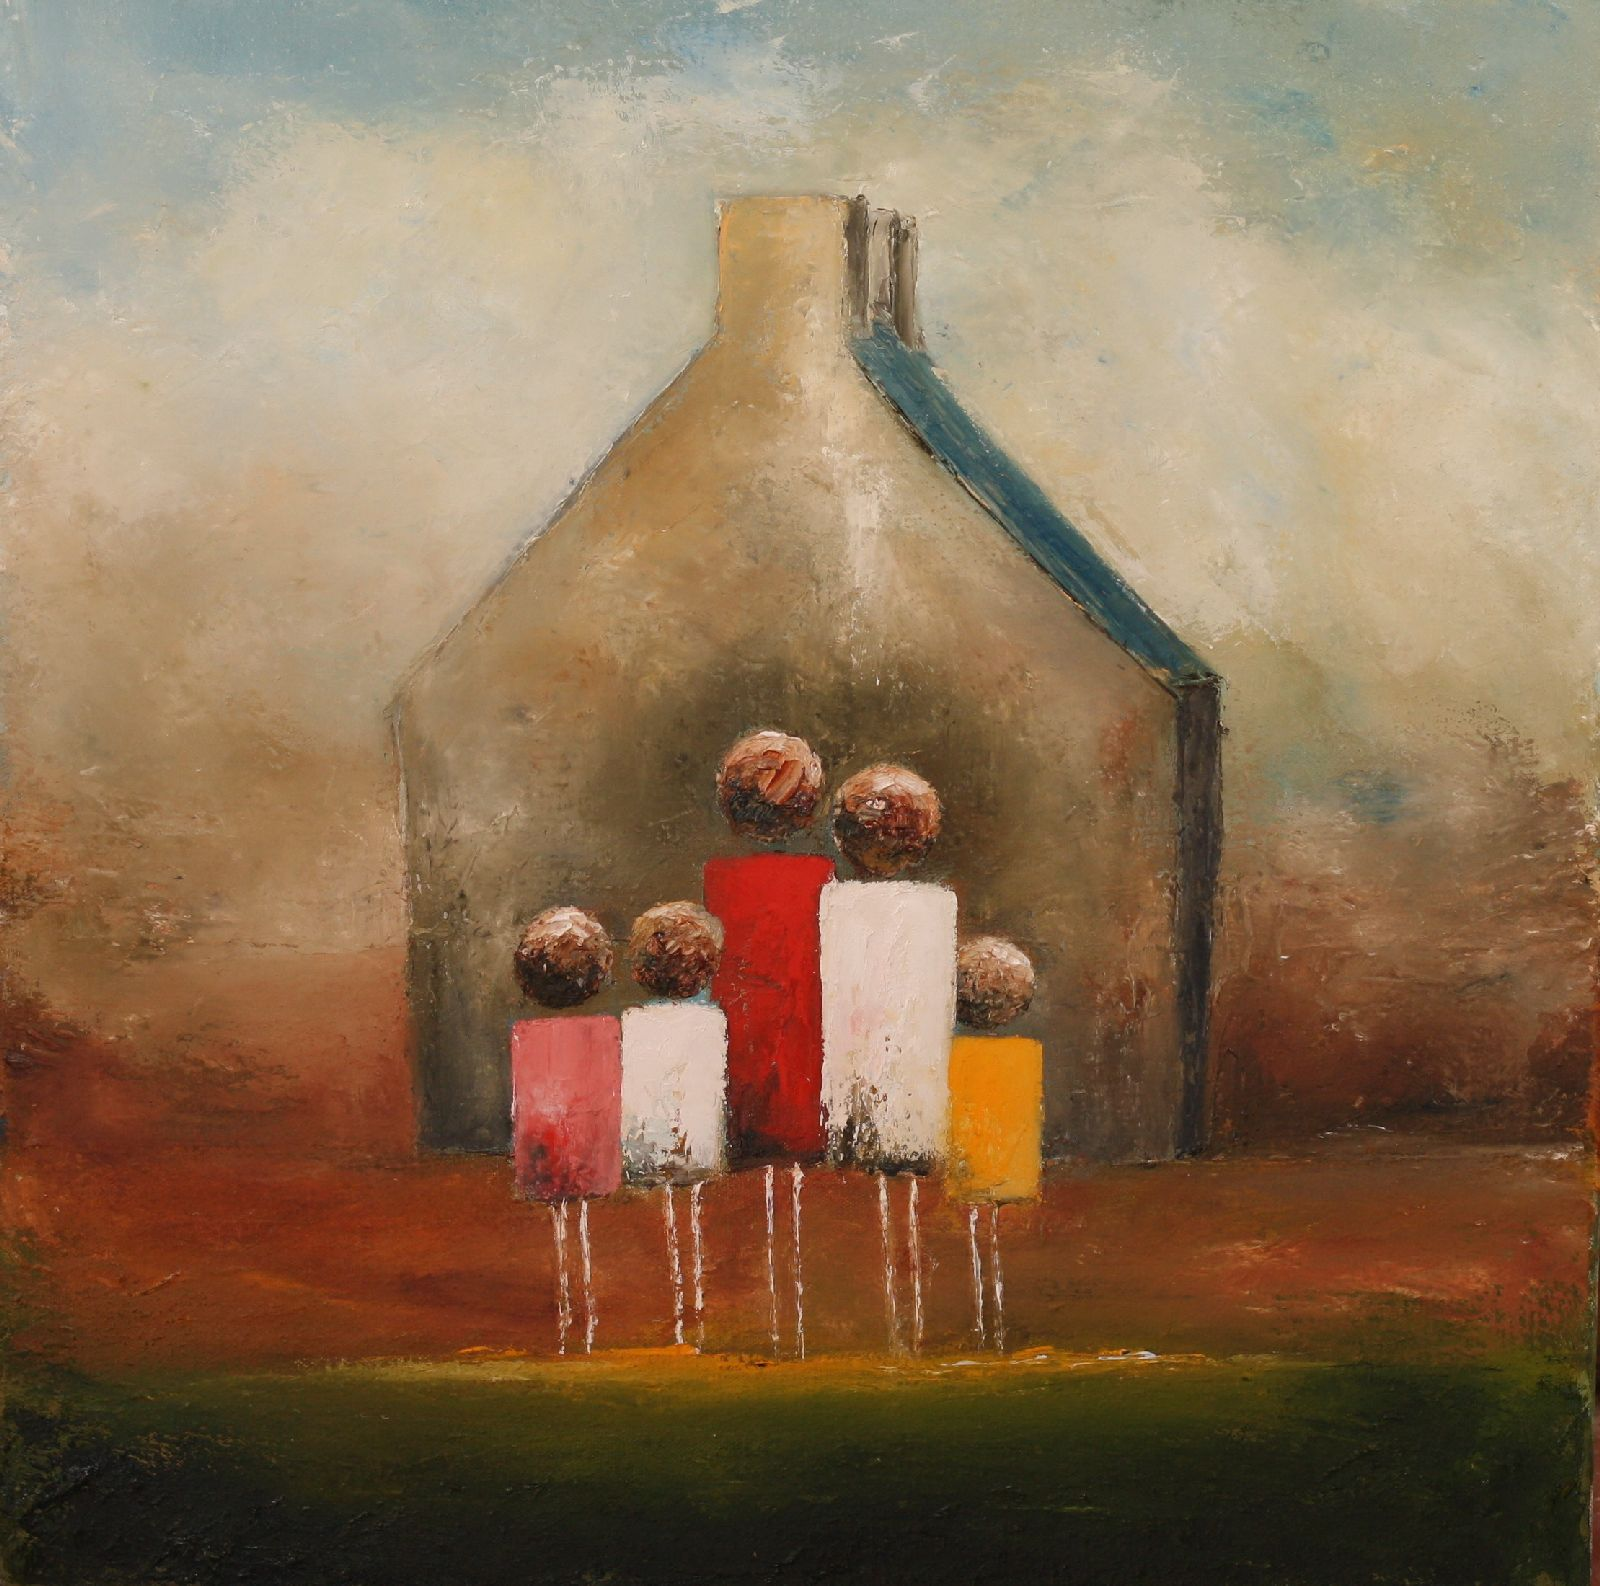 Home by Padraig McCaul